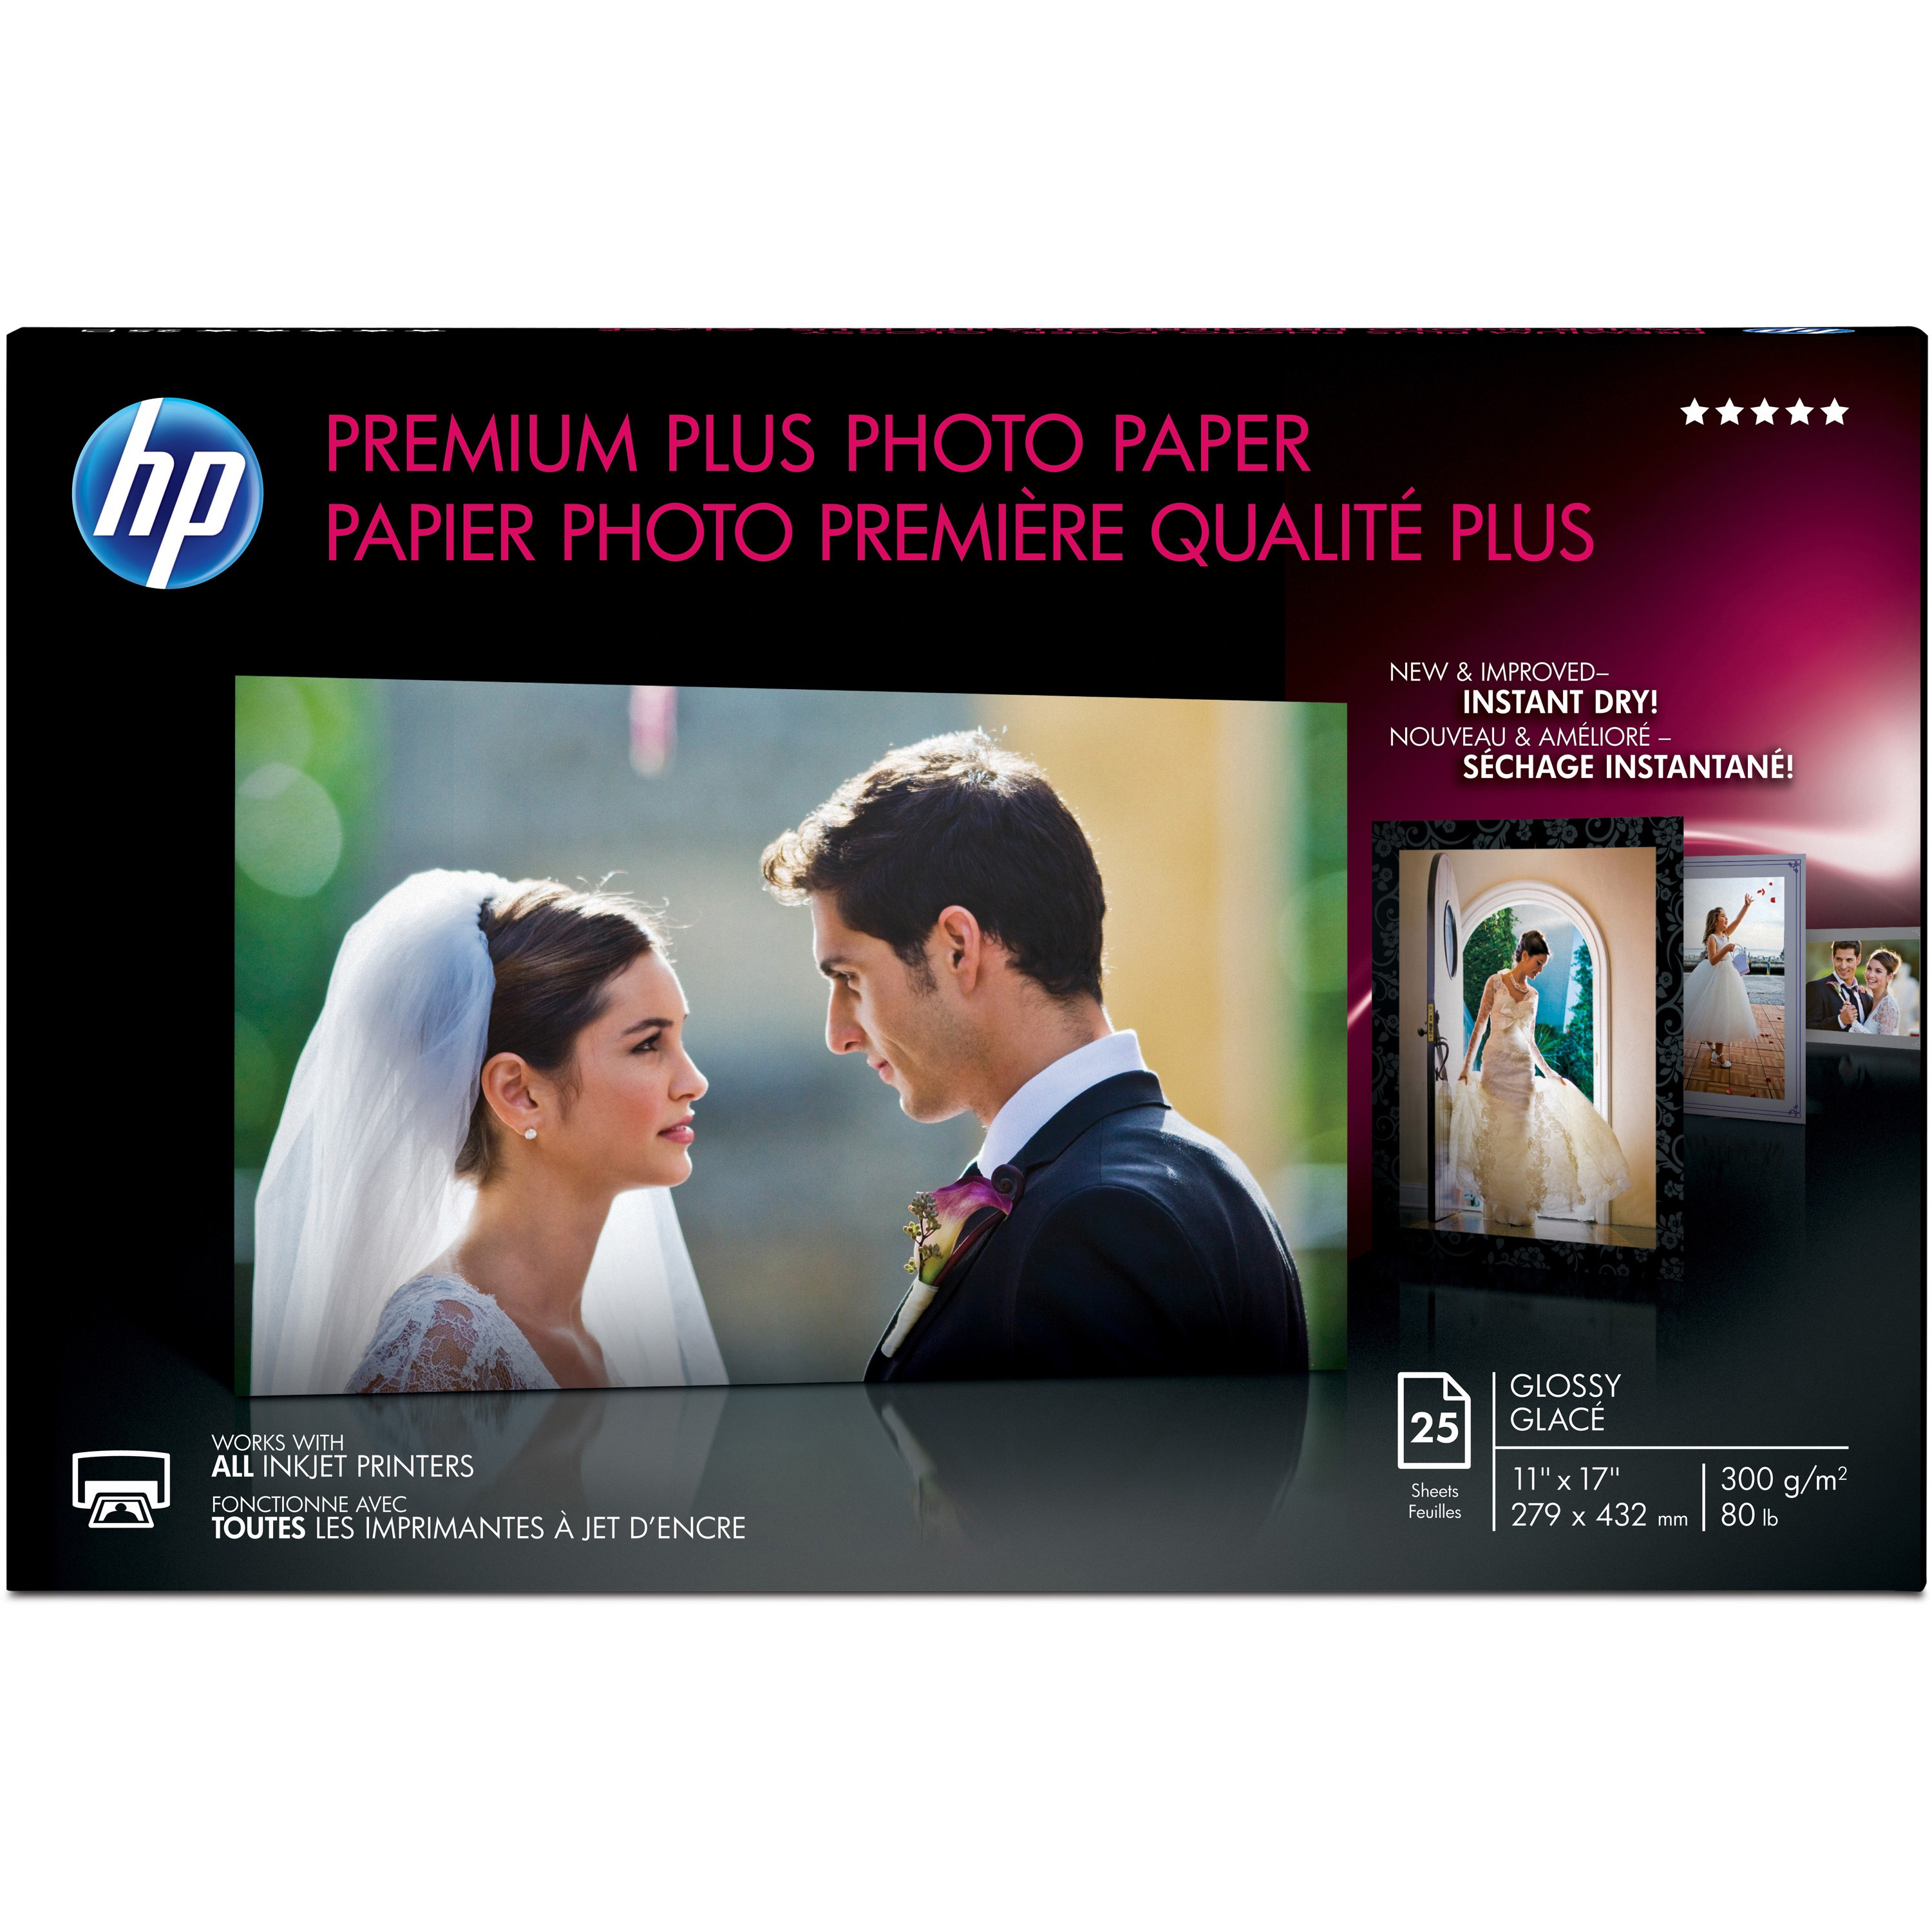 HP Premium Plus Inkjet Print Photo Paper, White, 25 / Pack (Quantity)